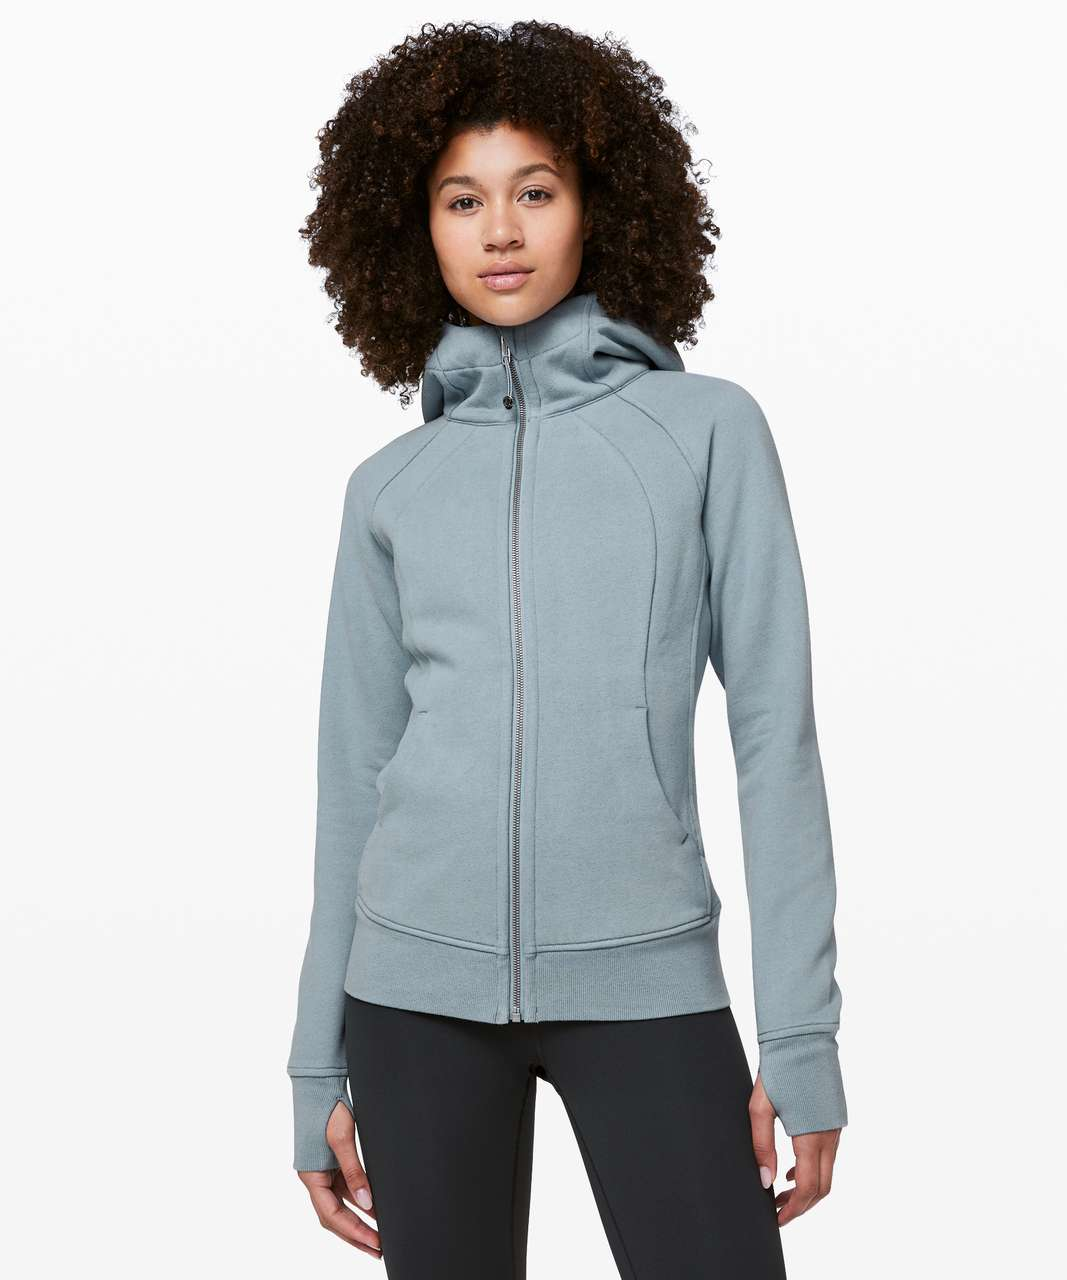 Lululemon Scuba Hoodie *Light Cotton Fleece - Chambray